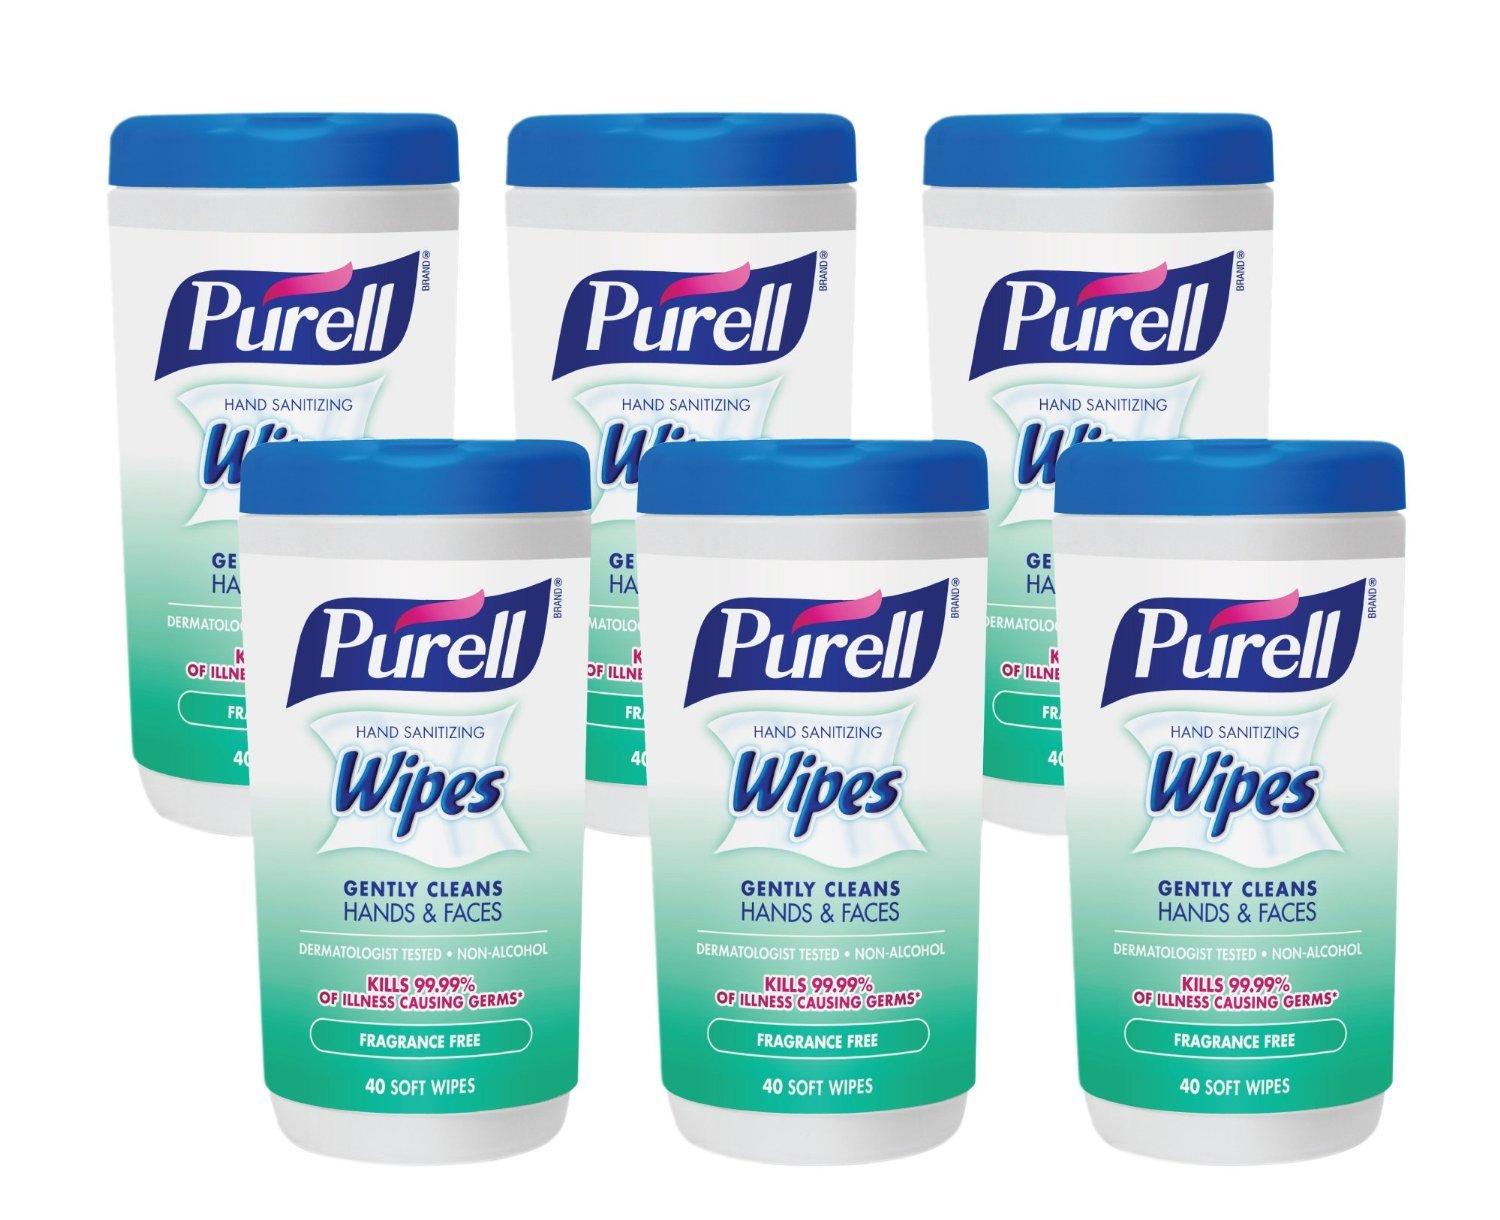 Purell 9121-06-CMR Hand Sanitizing Wipes, Fragrance Free, 40 Count Canister (Pack of 6) (Packaging may vary)